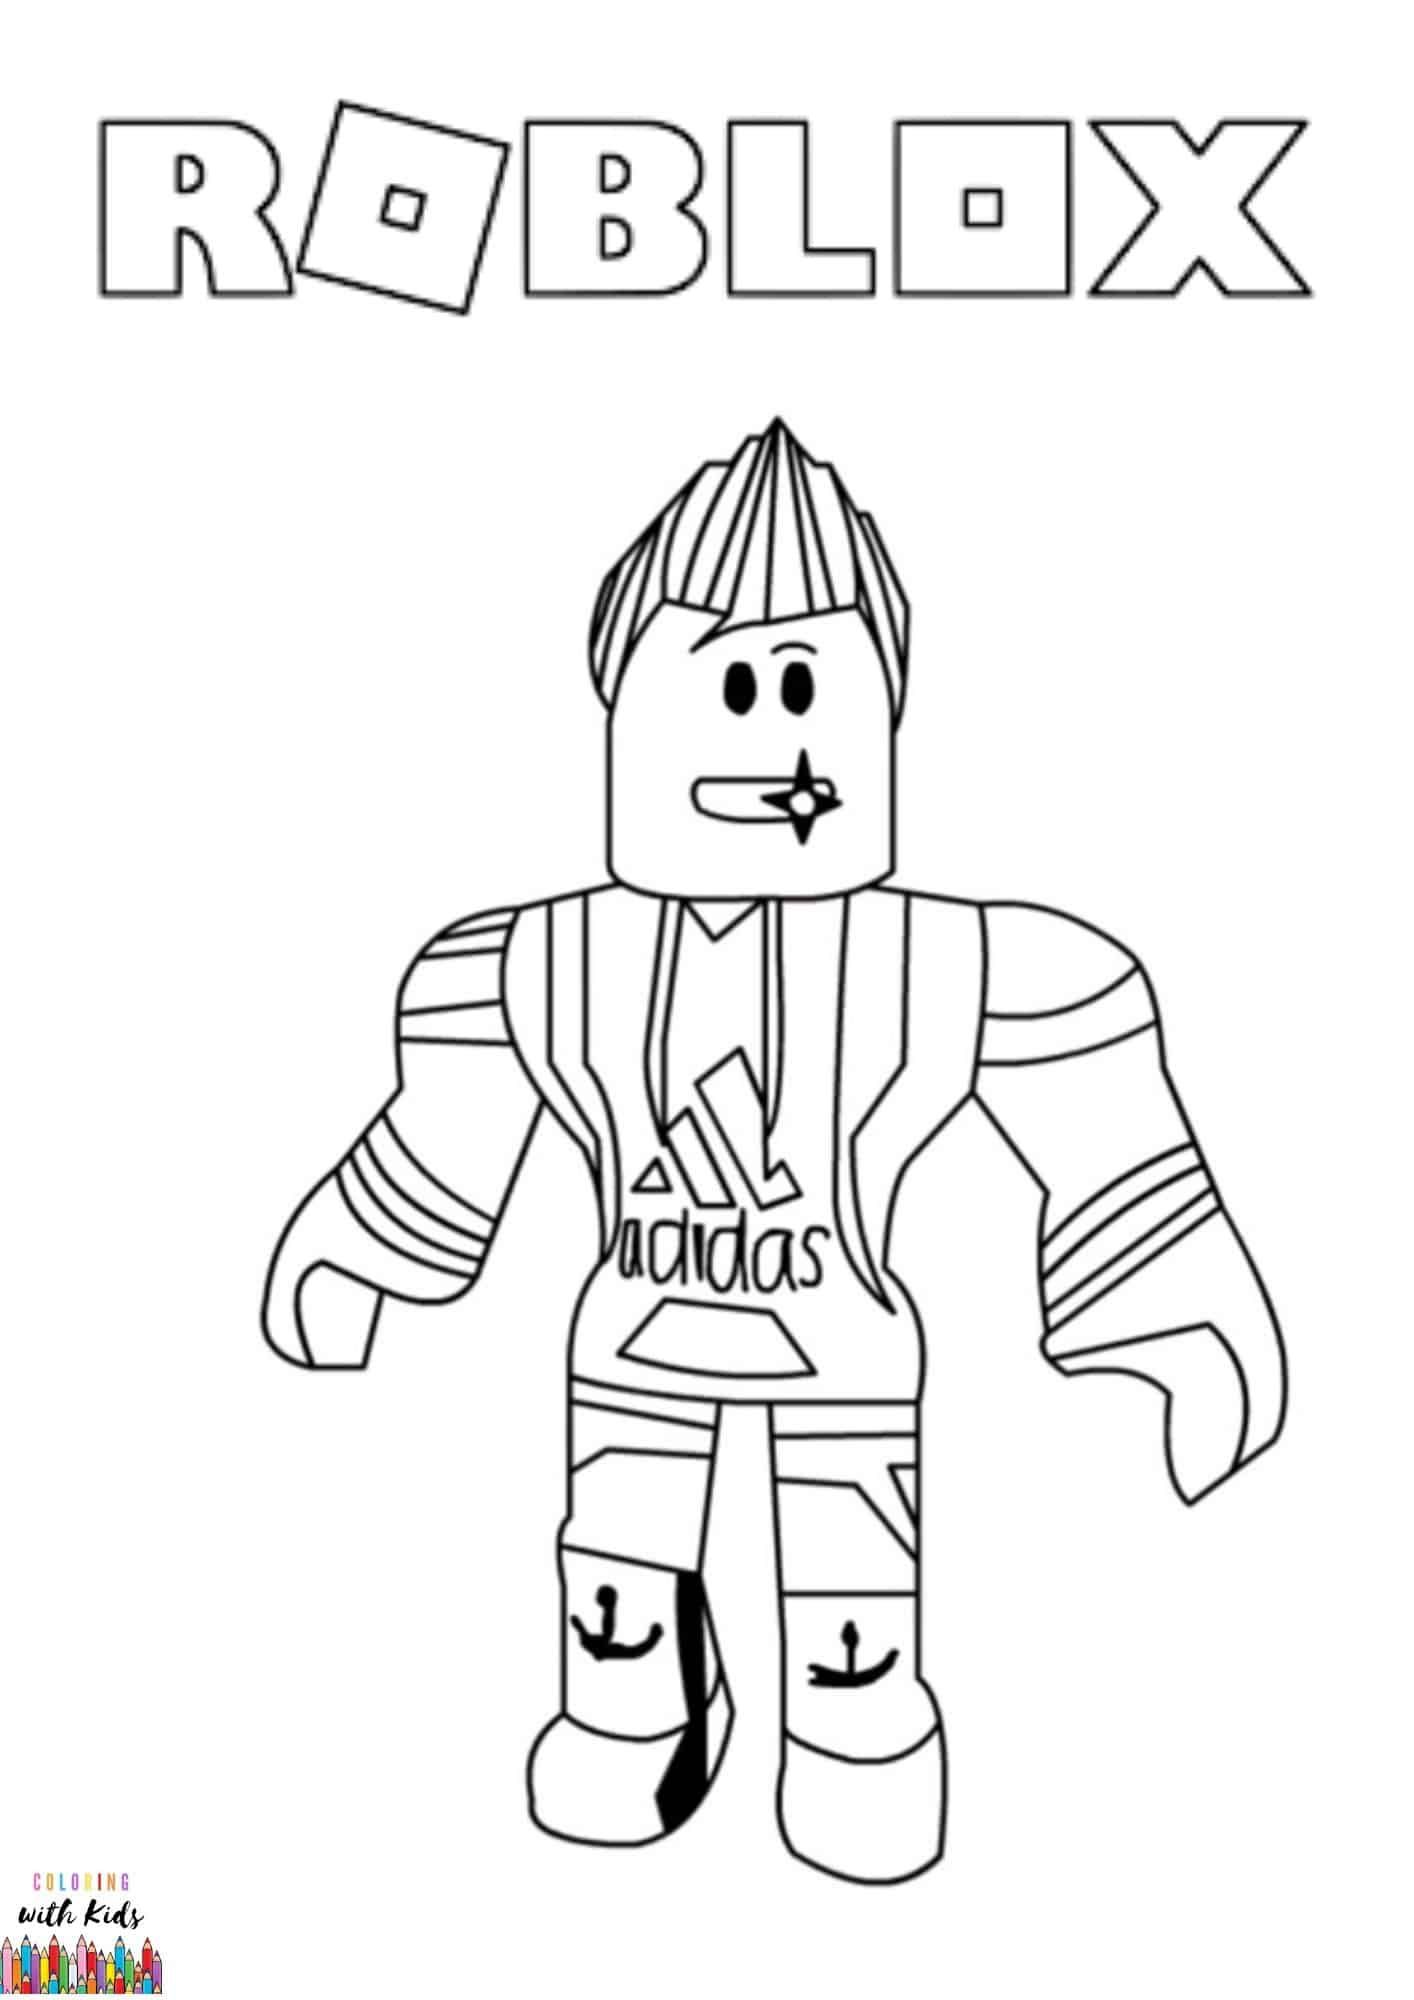 Roblox Avatar Drawing Coloring Page Image Credit Roblox Avatar Drawing By Yadia Chenia Permission For P Coloring Pages Coloring Pages For Boys Roblox